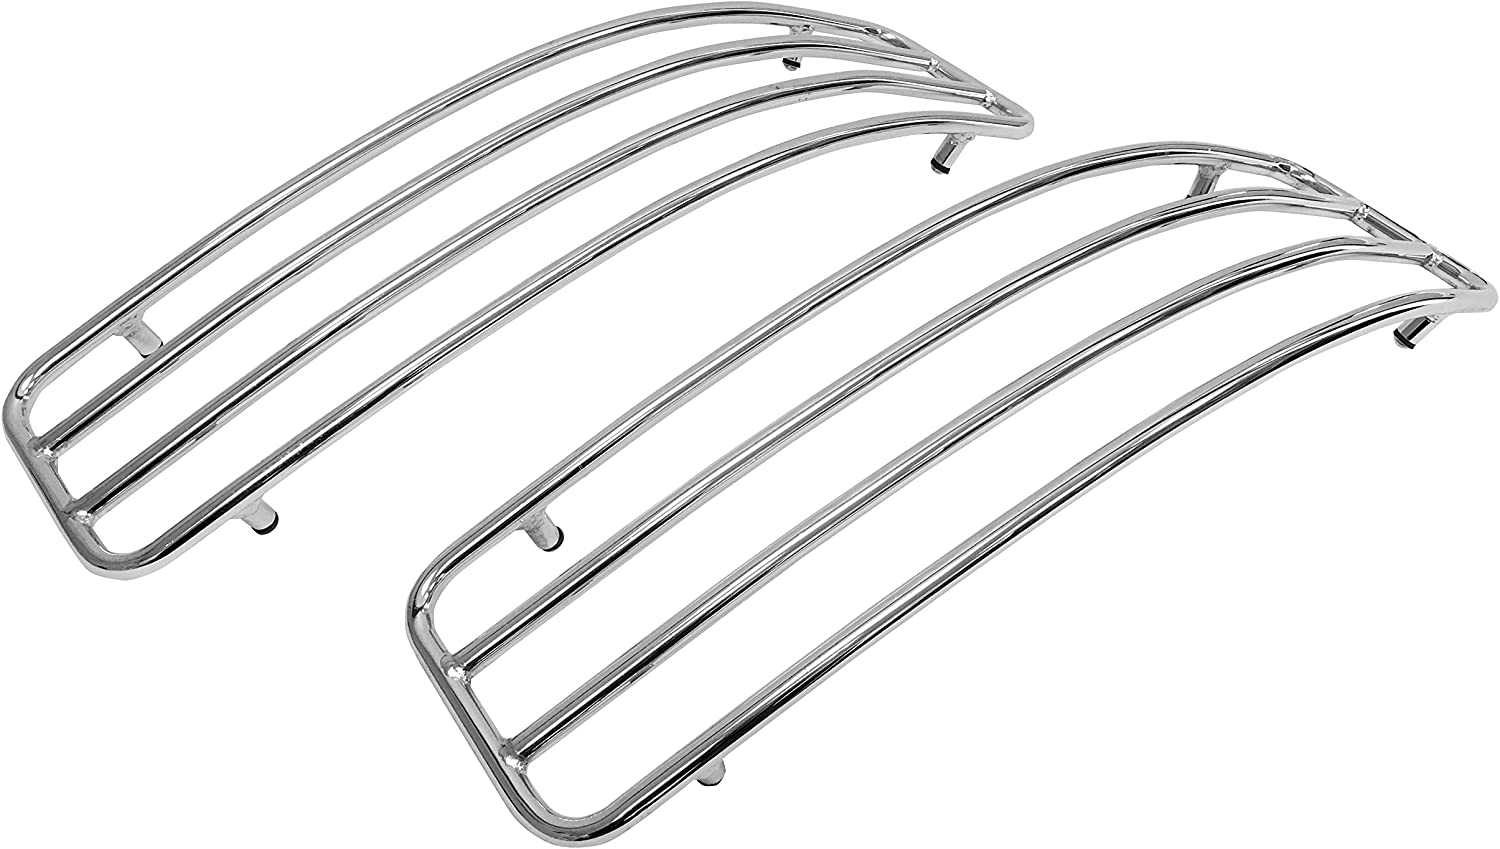 Chrome Top Rails for Kawasaki Vulcan VN1500 VN1600 VN1700 Nomad Hard Saddlebags